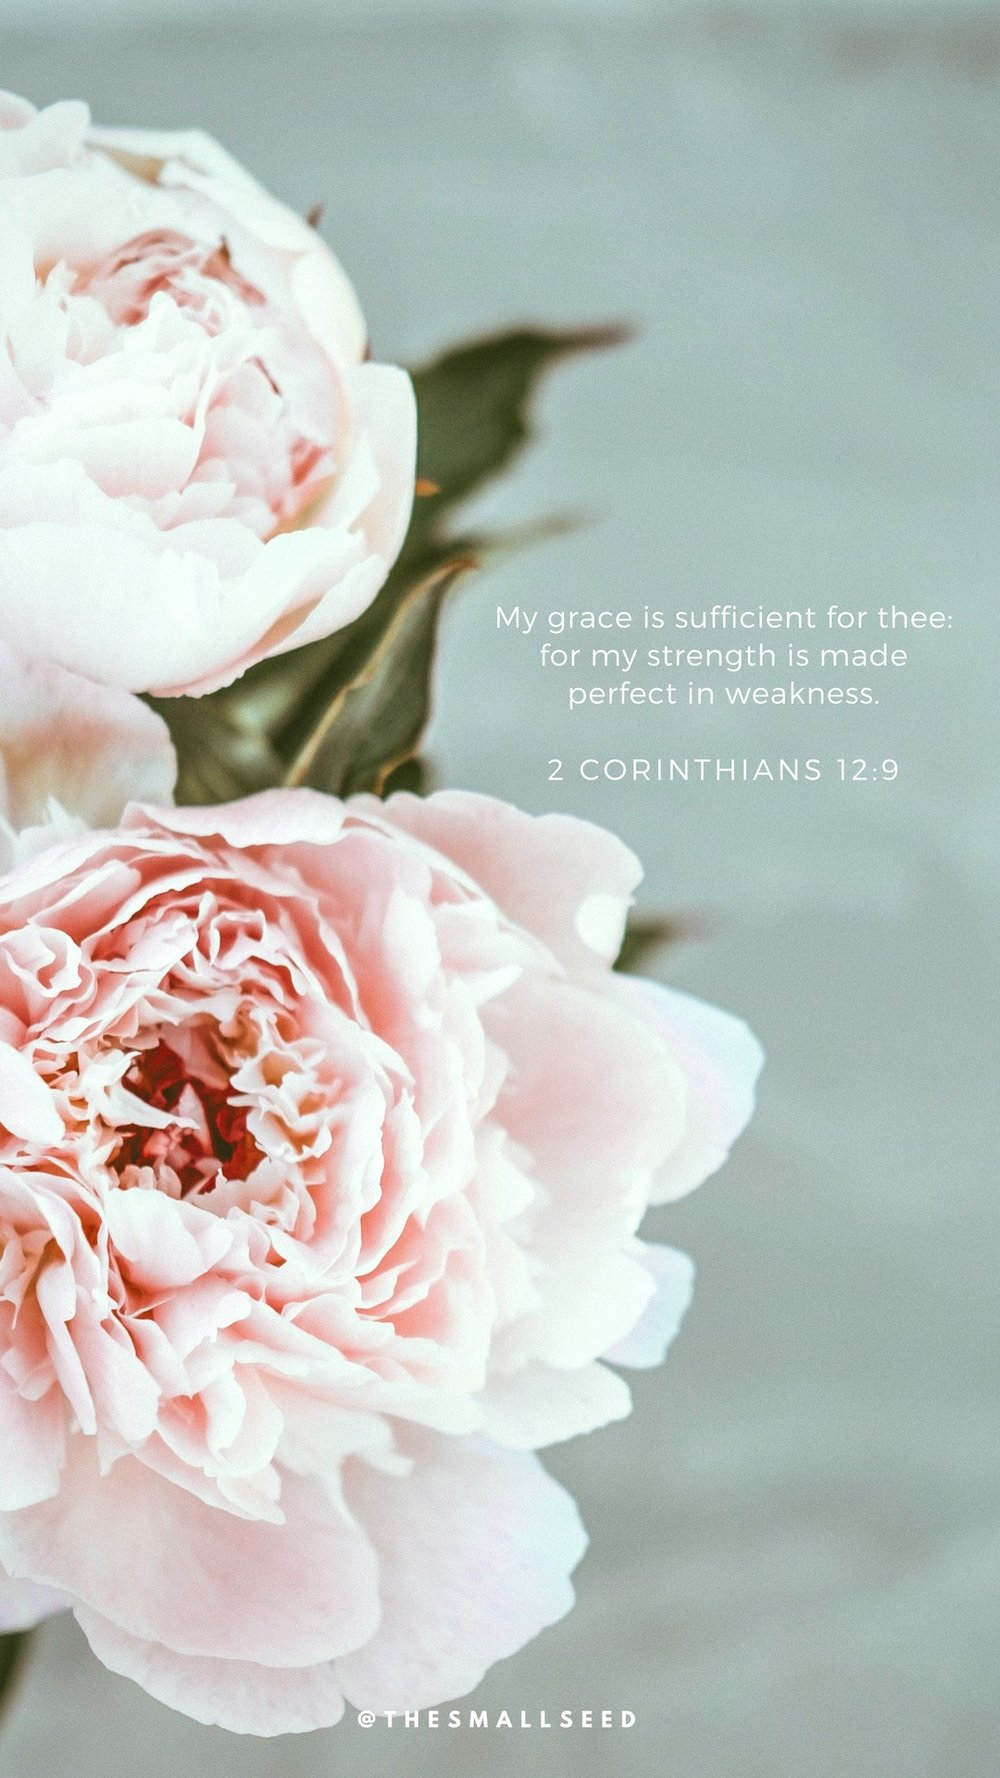 My Grace Is Sufficient*